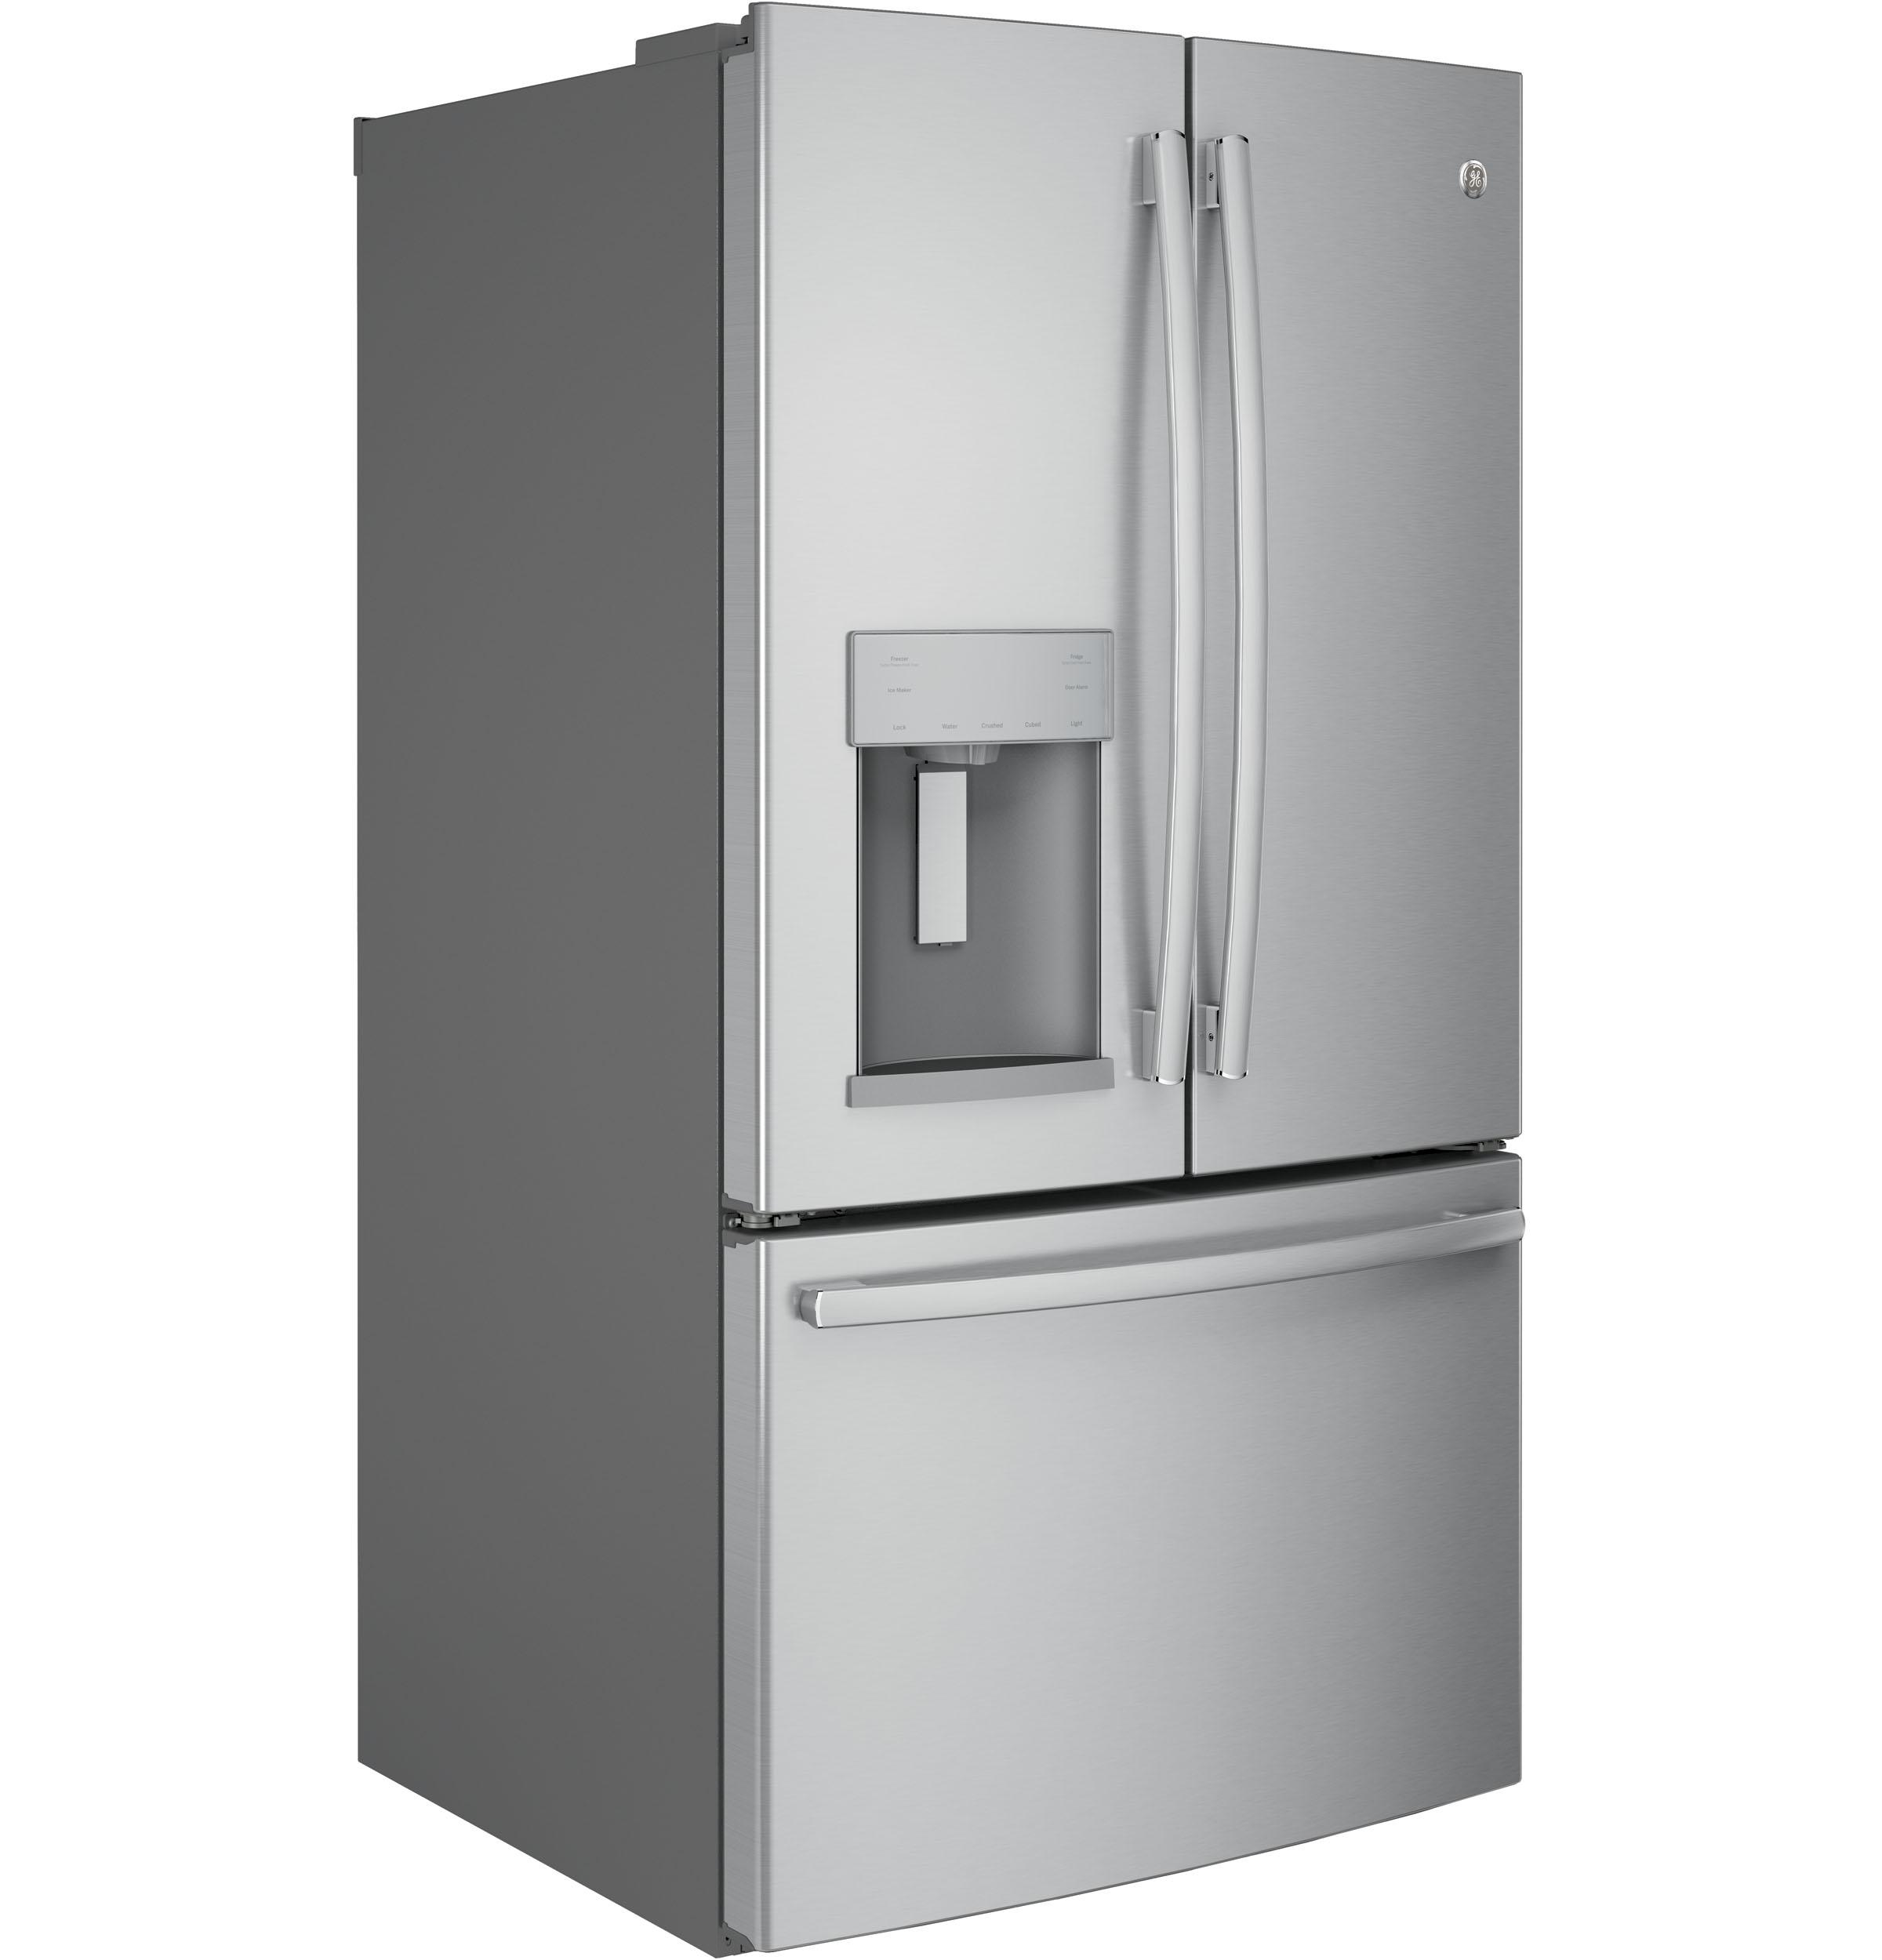 Gfe26gskss Ge 36 25 8 Cu Ft French Door Refrigerator With Exterior Ice Water Stainless